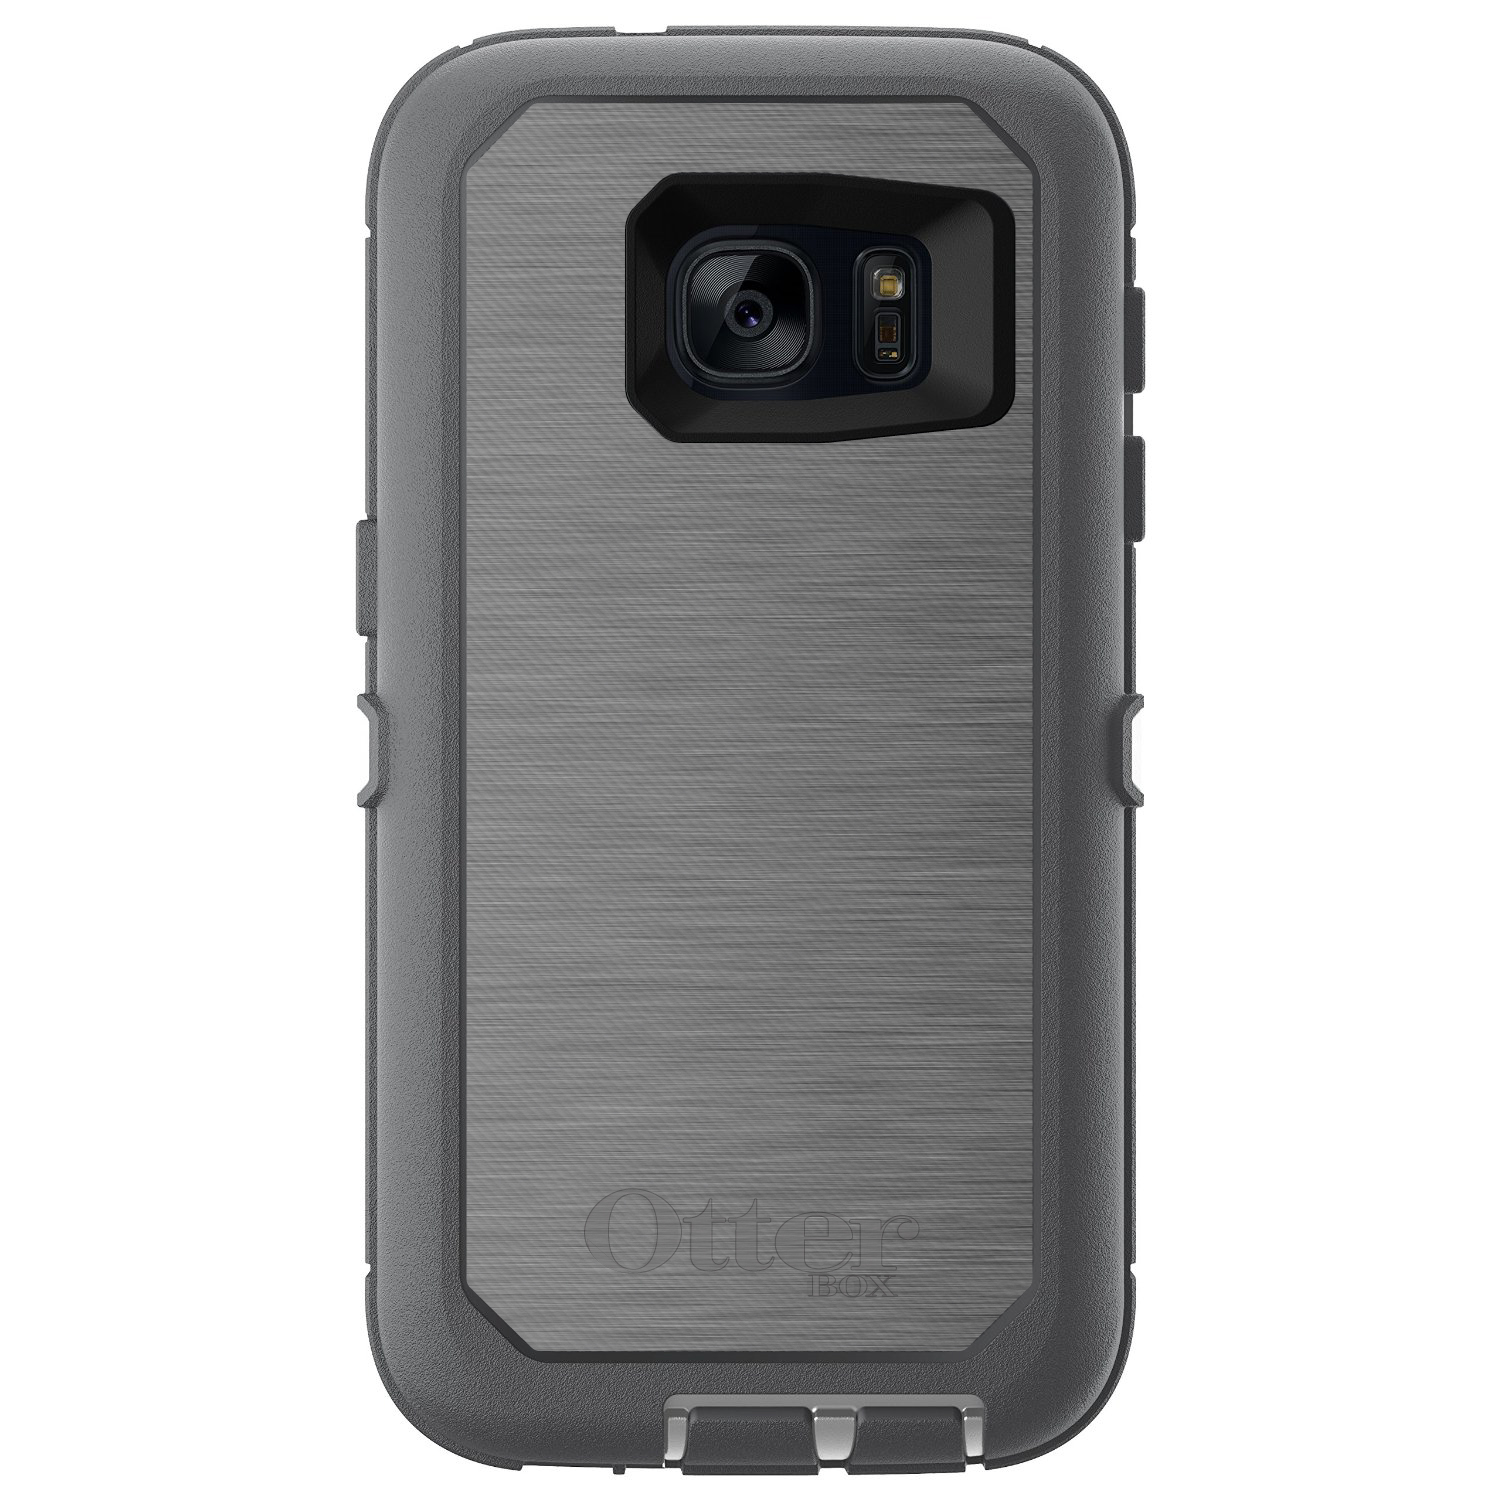 DistinctInk™ Custom Grey OtterBox Defender Series Case for Samsung Galaxy S7 - Grey Silver Stainless Steel Print Print